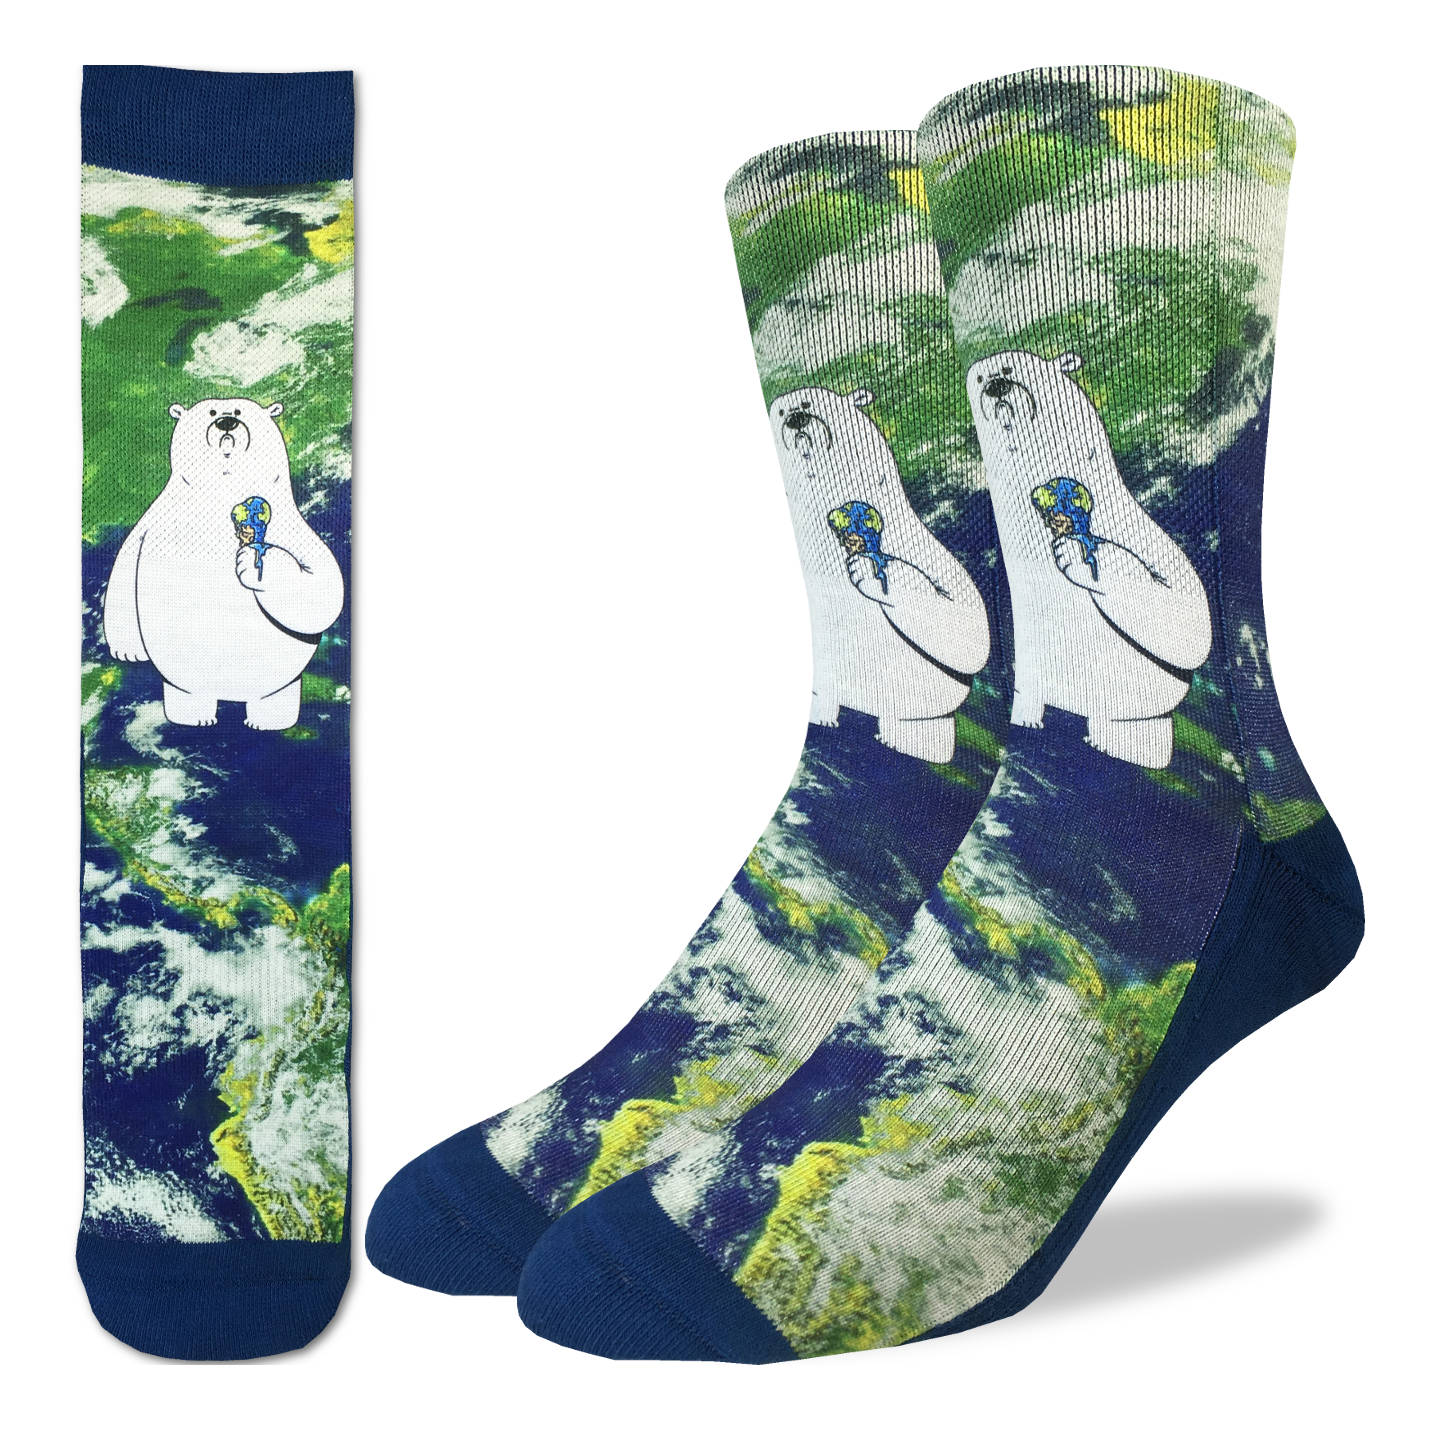 Men's Global Warming Polar Bear Socks - Good Luck Sock